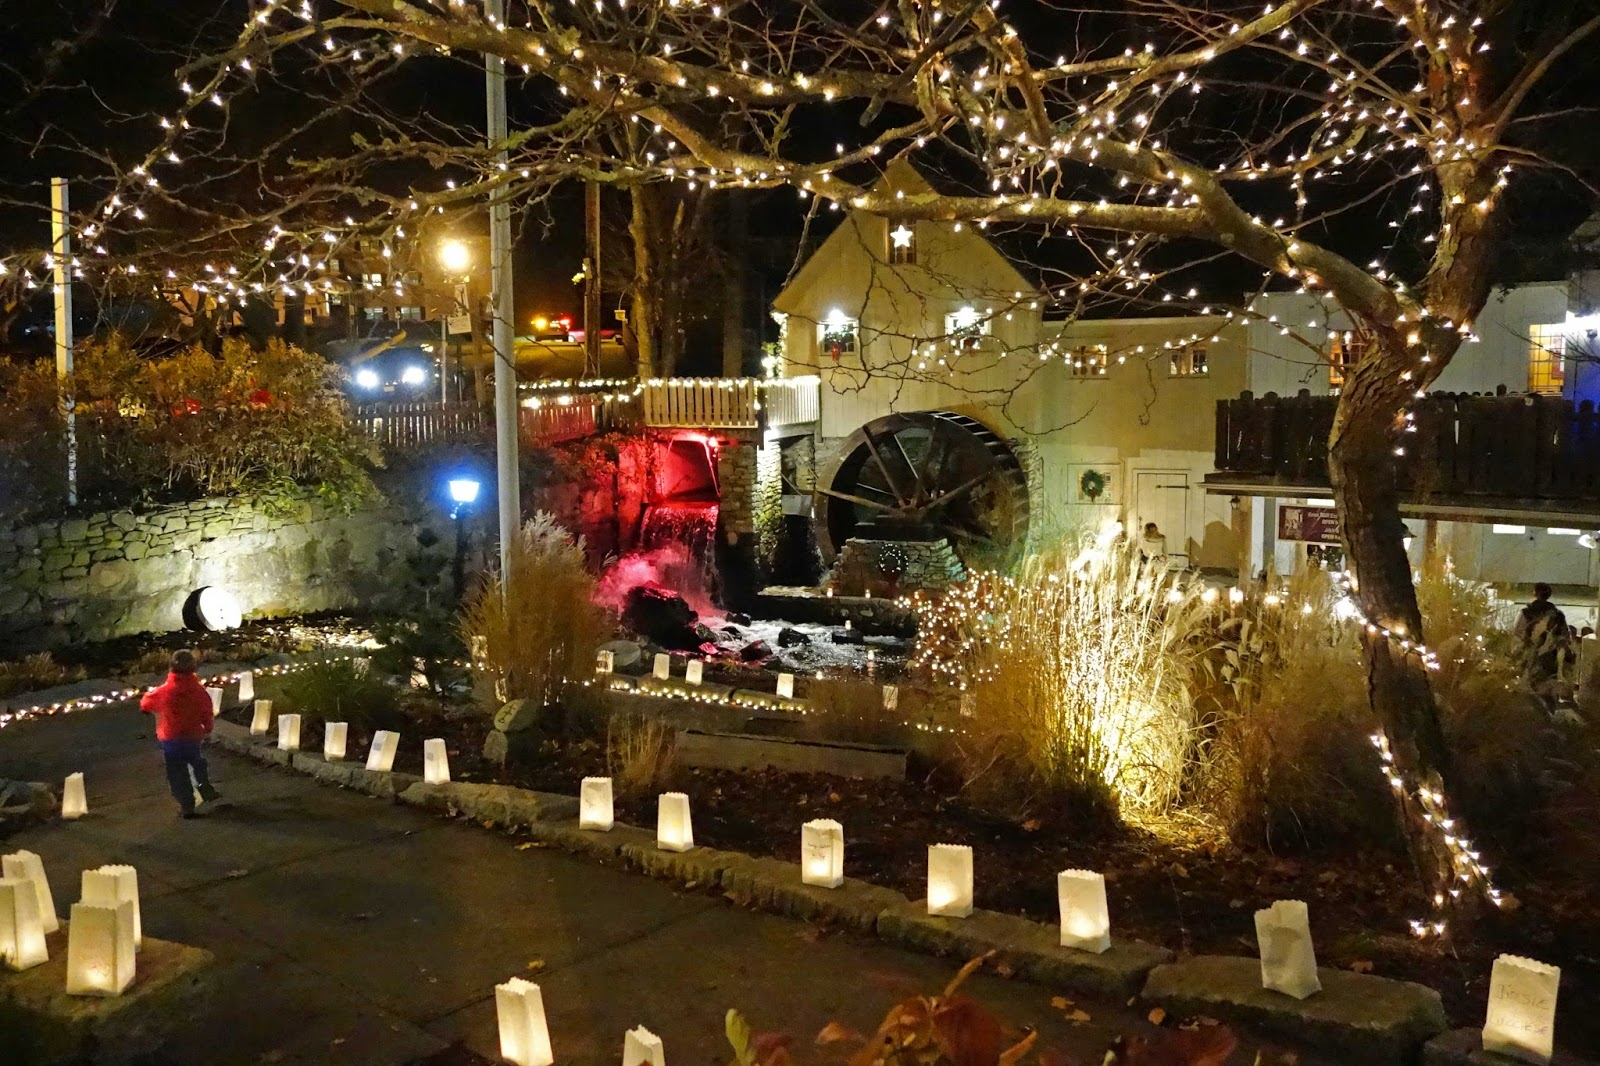 Joe's Retirement Blog: Lights of Hope Luminaria Display ...